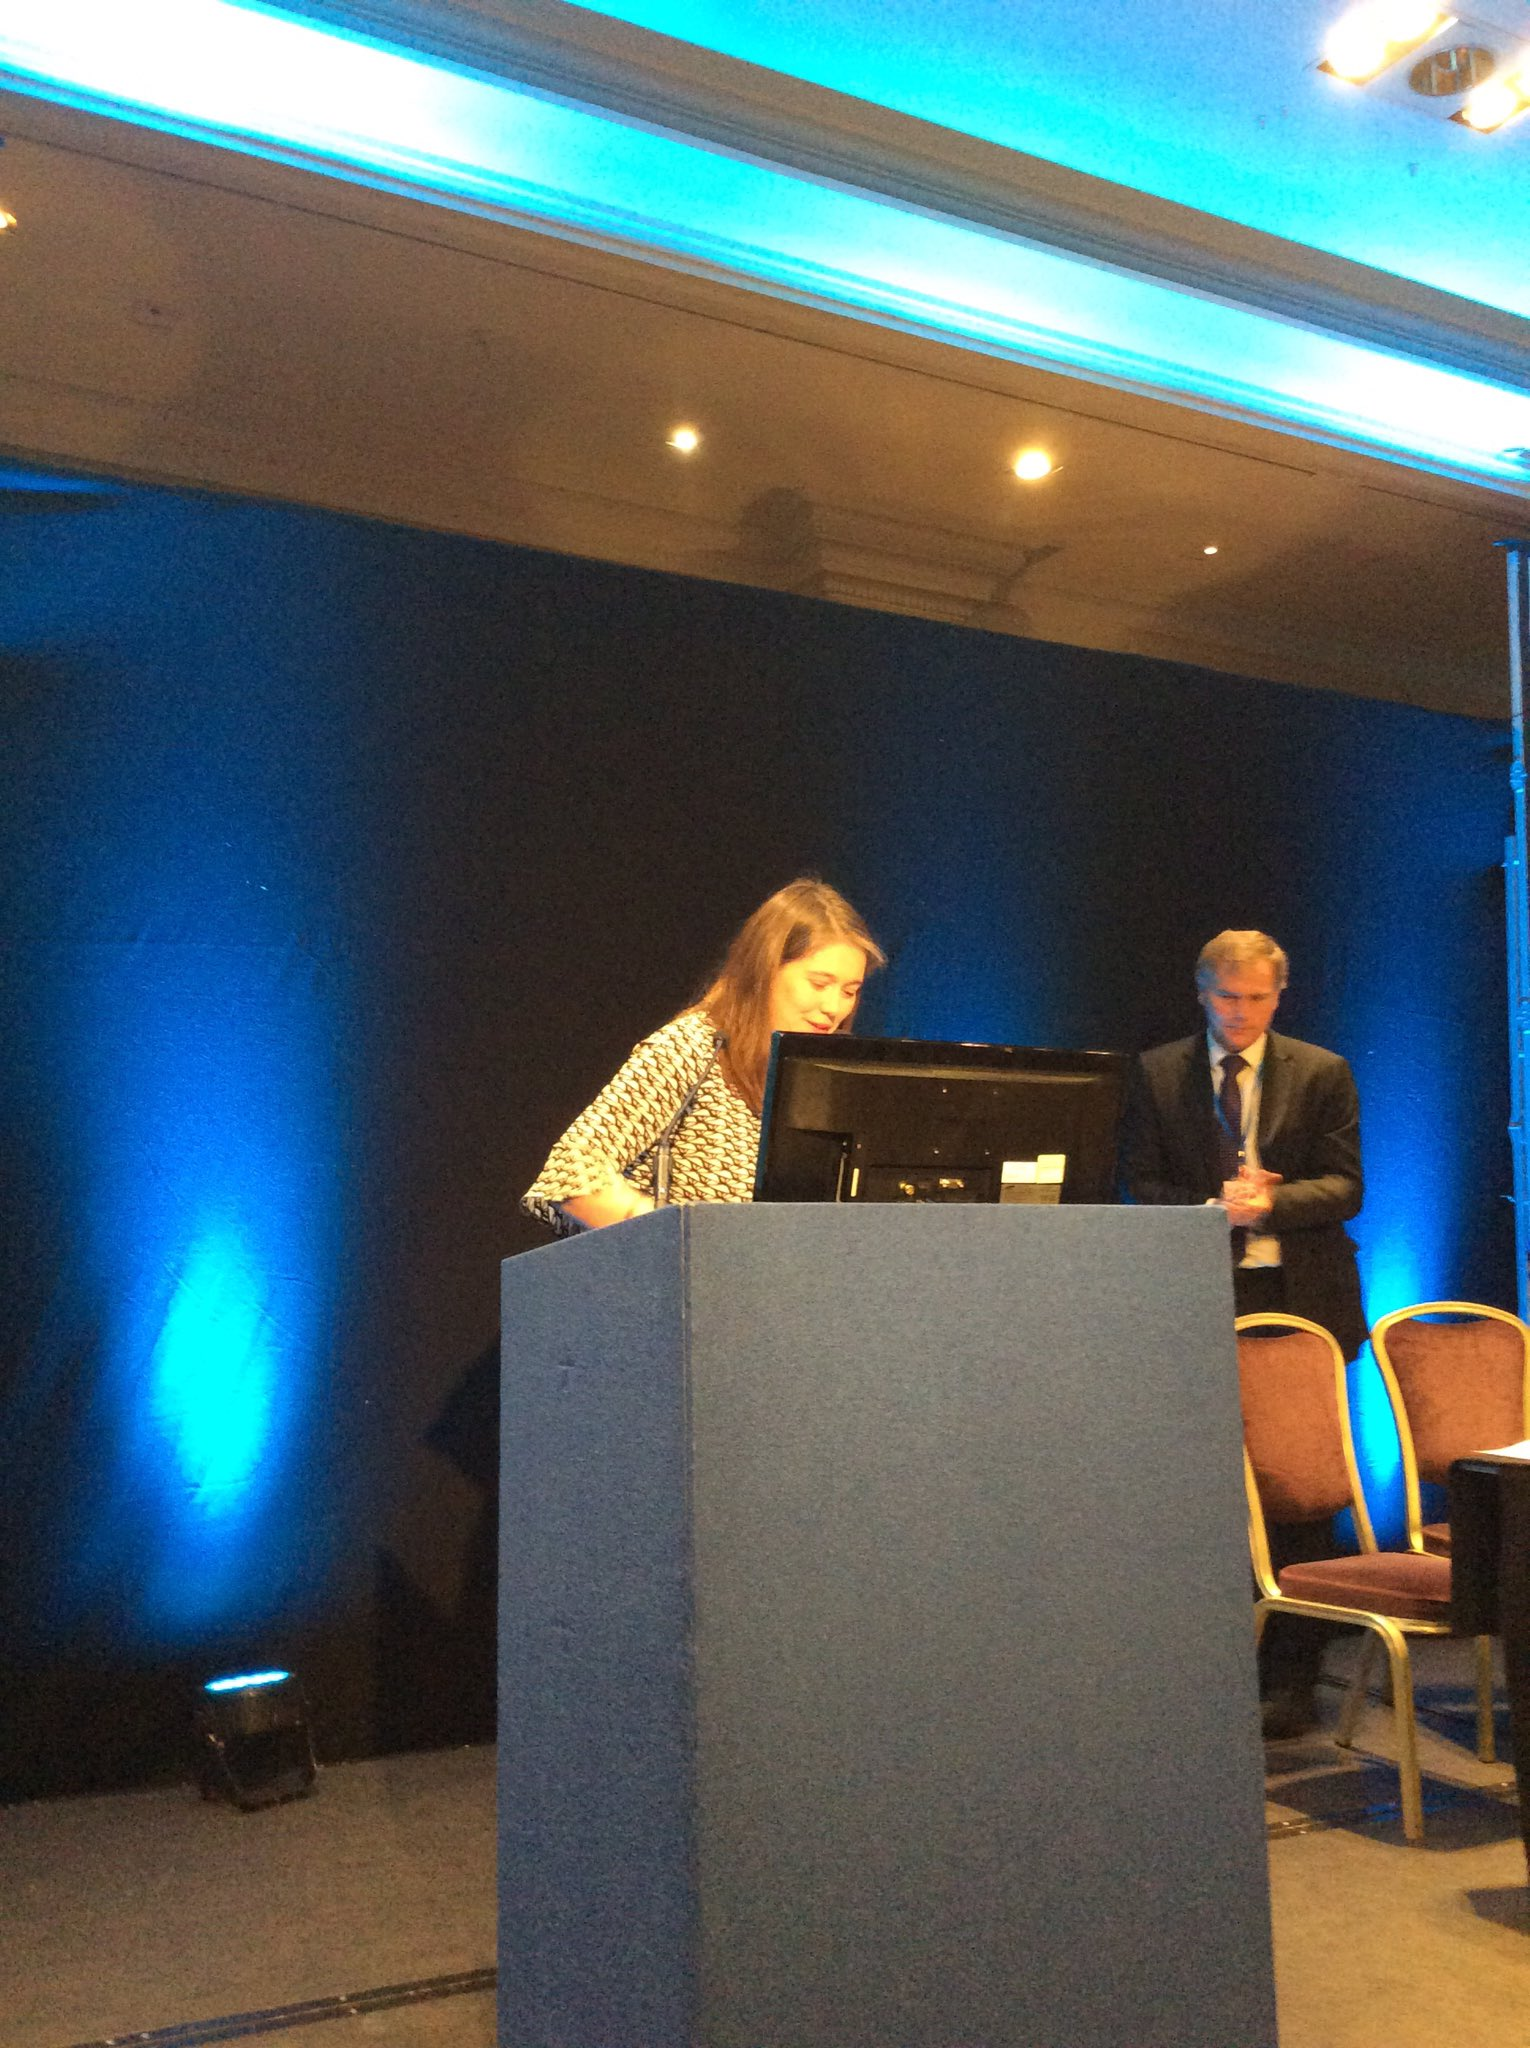 At #scotpublichealth @ClydesdAileen tells @ScotPublic that working #together to address deep seated #inequality https://t.co/yYqkQX2zKQ